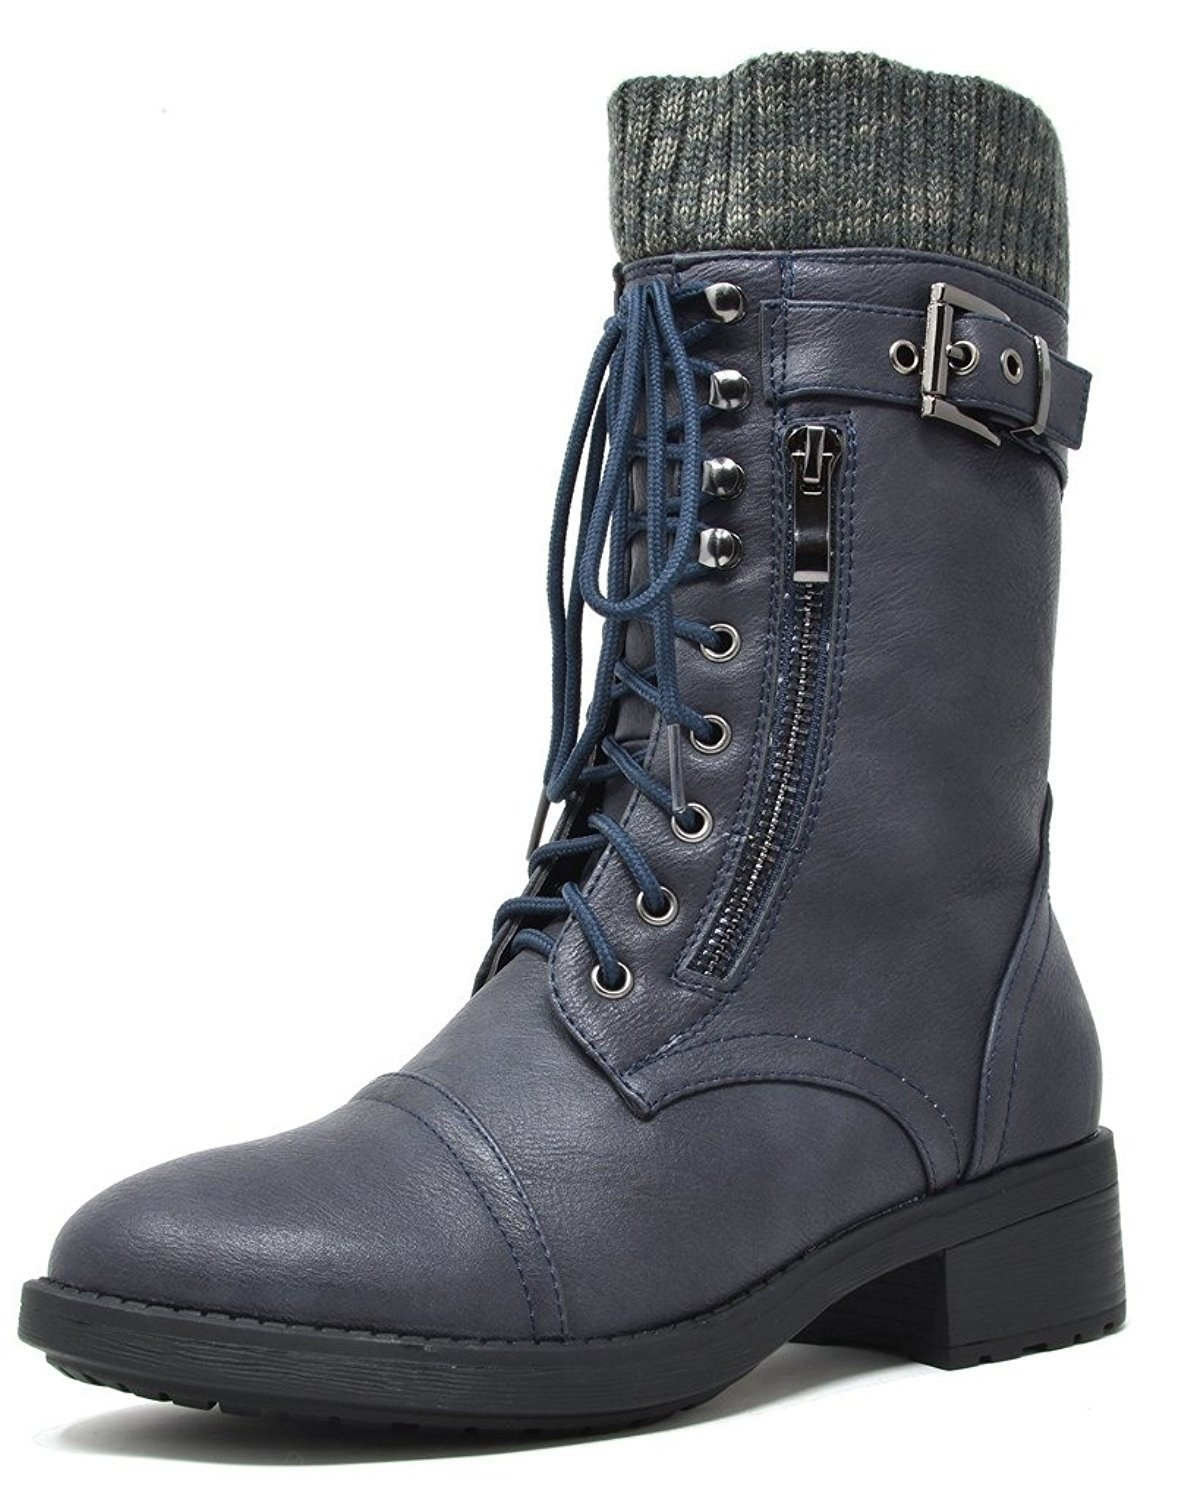 df01cfe71b485 21 Of The Best Winter Boots And Snow Boots You Can Get On Amazon